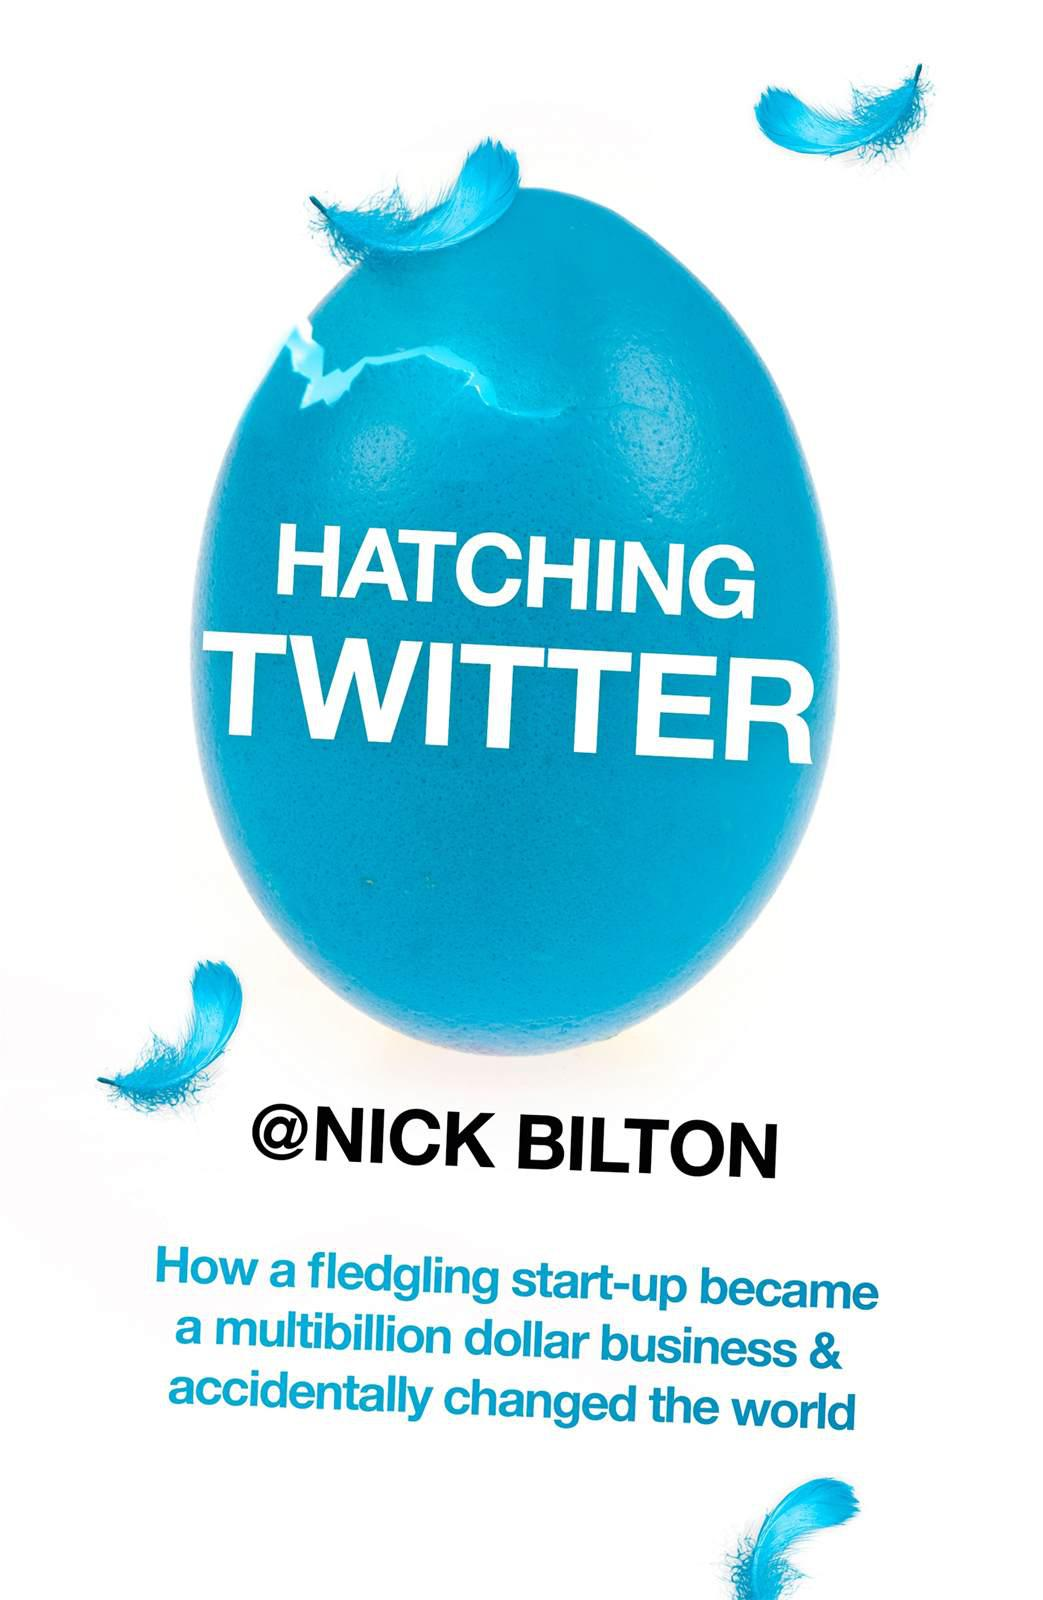 Hatching Twitter Summary